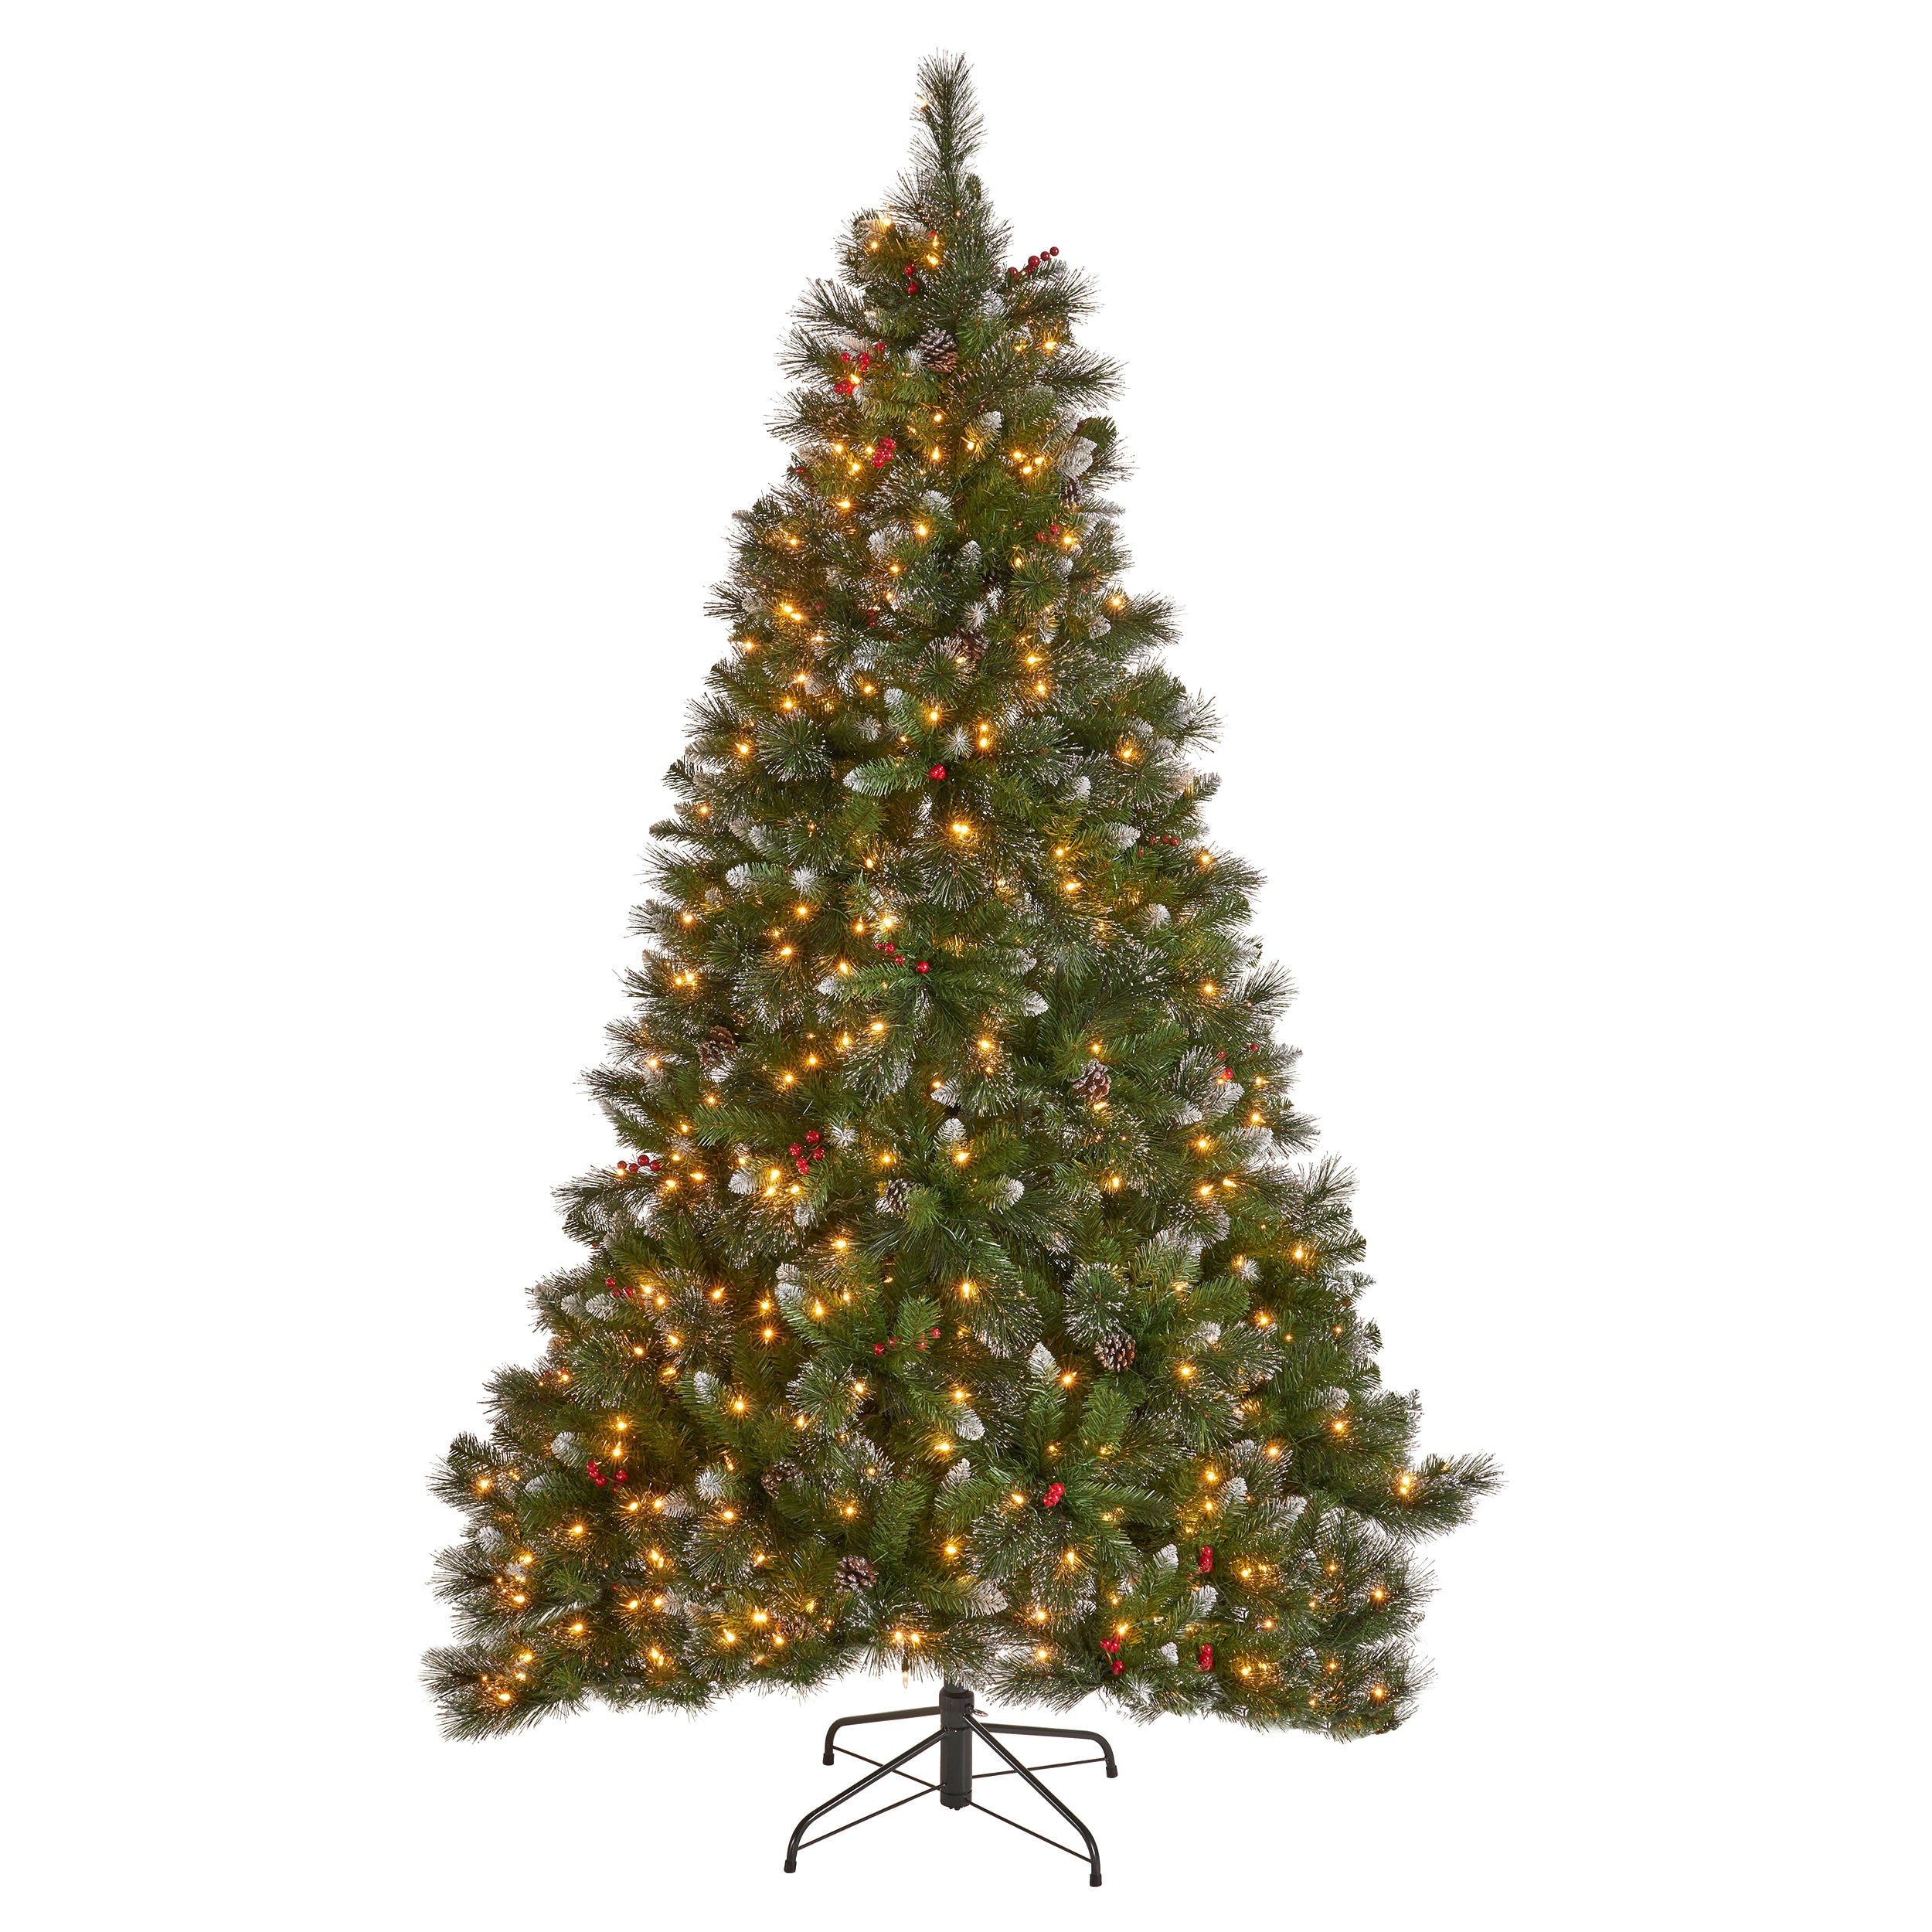 75 foot Mixed Spruce Hinged Artificial Christmas Tree with Glitter Branches Red Berries and Pinecones Clear Lights